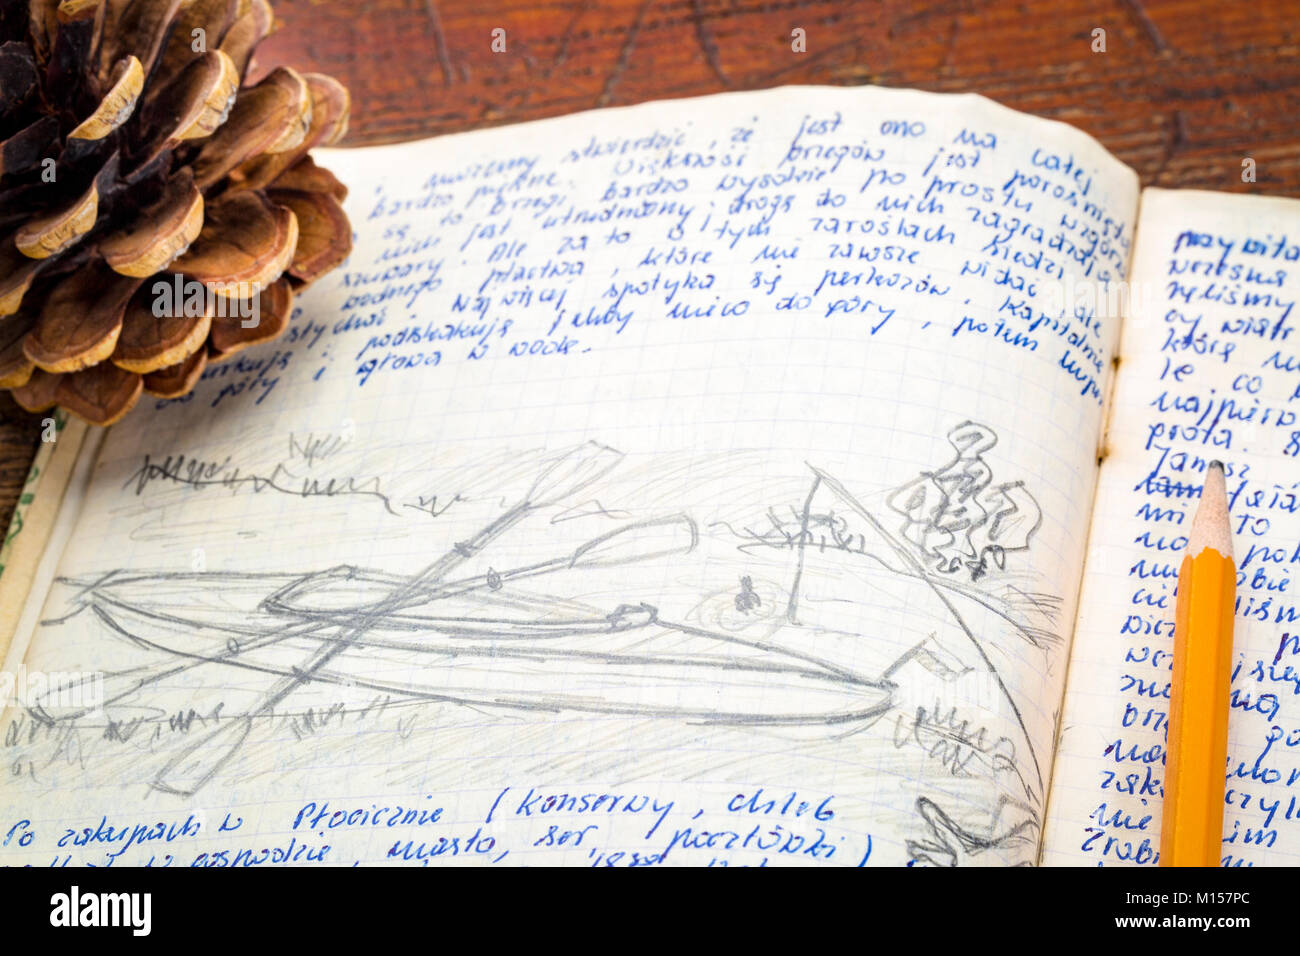 kayak expedition journal handwriting and drawing in pencil travel log from paddling trip across north eastern poland written by me photographer i